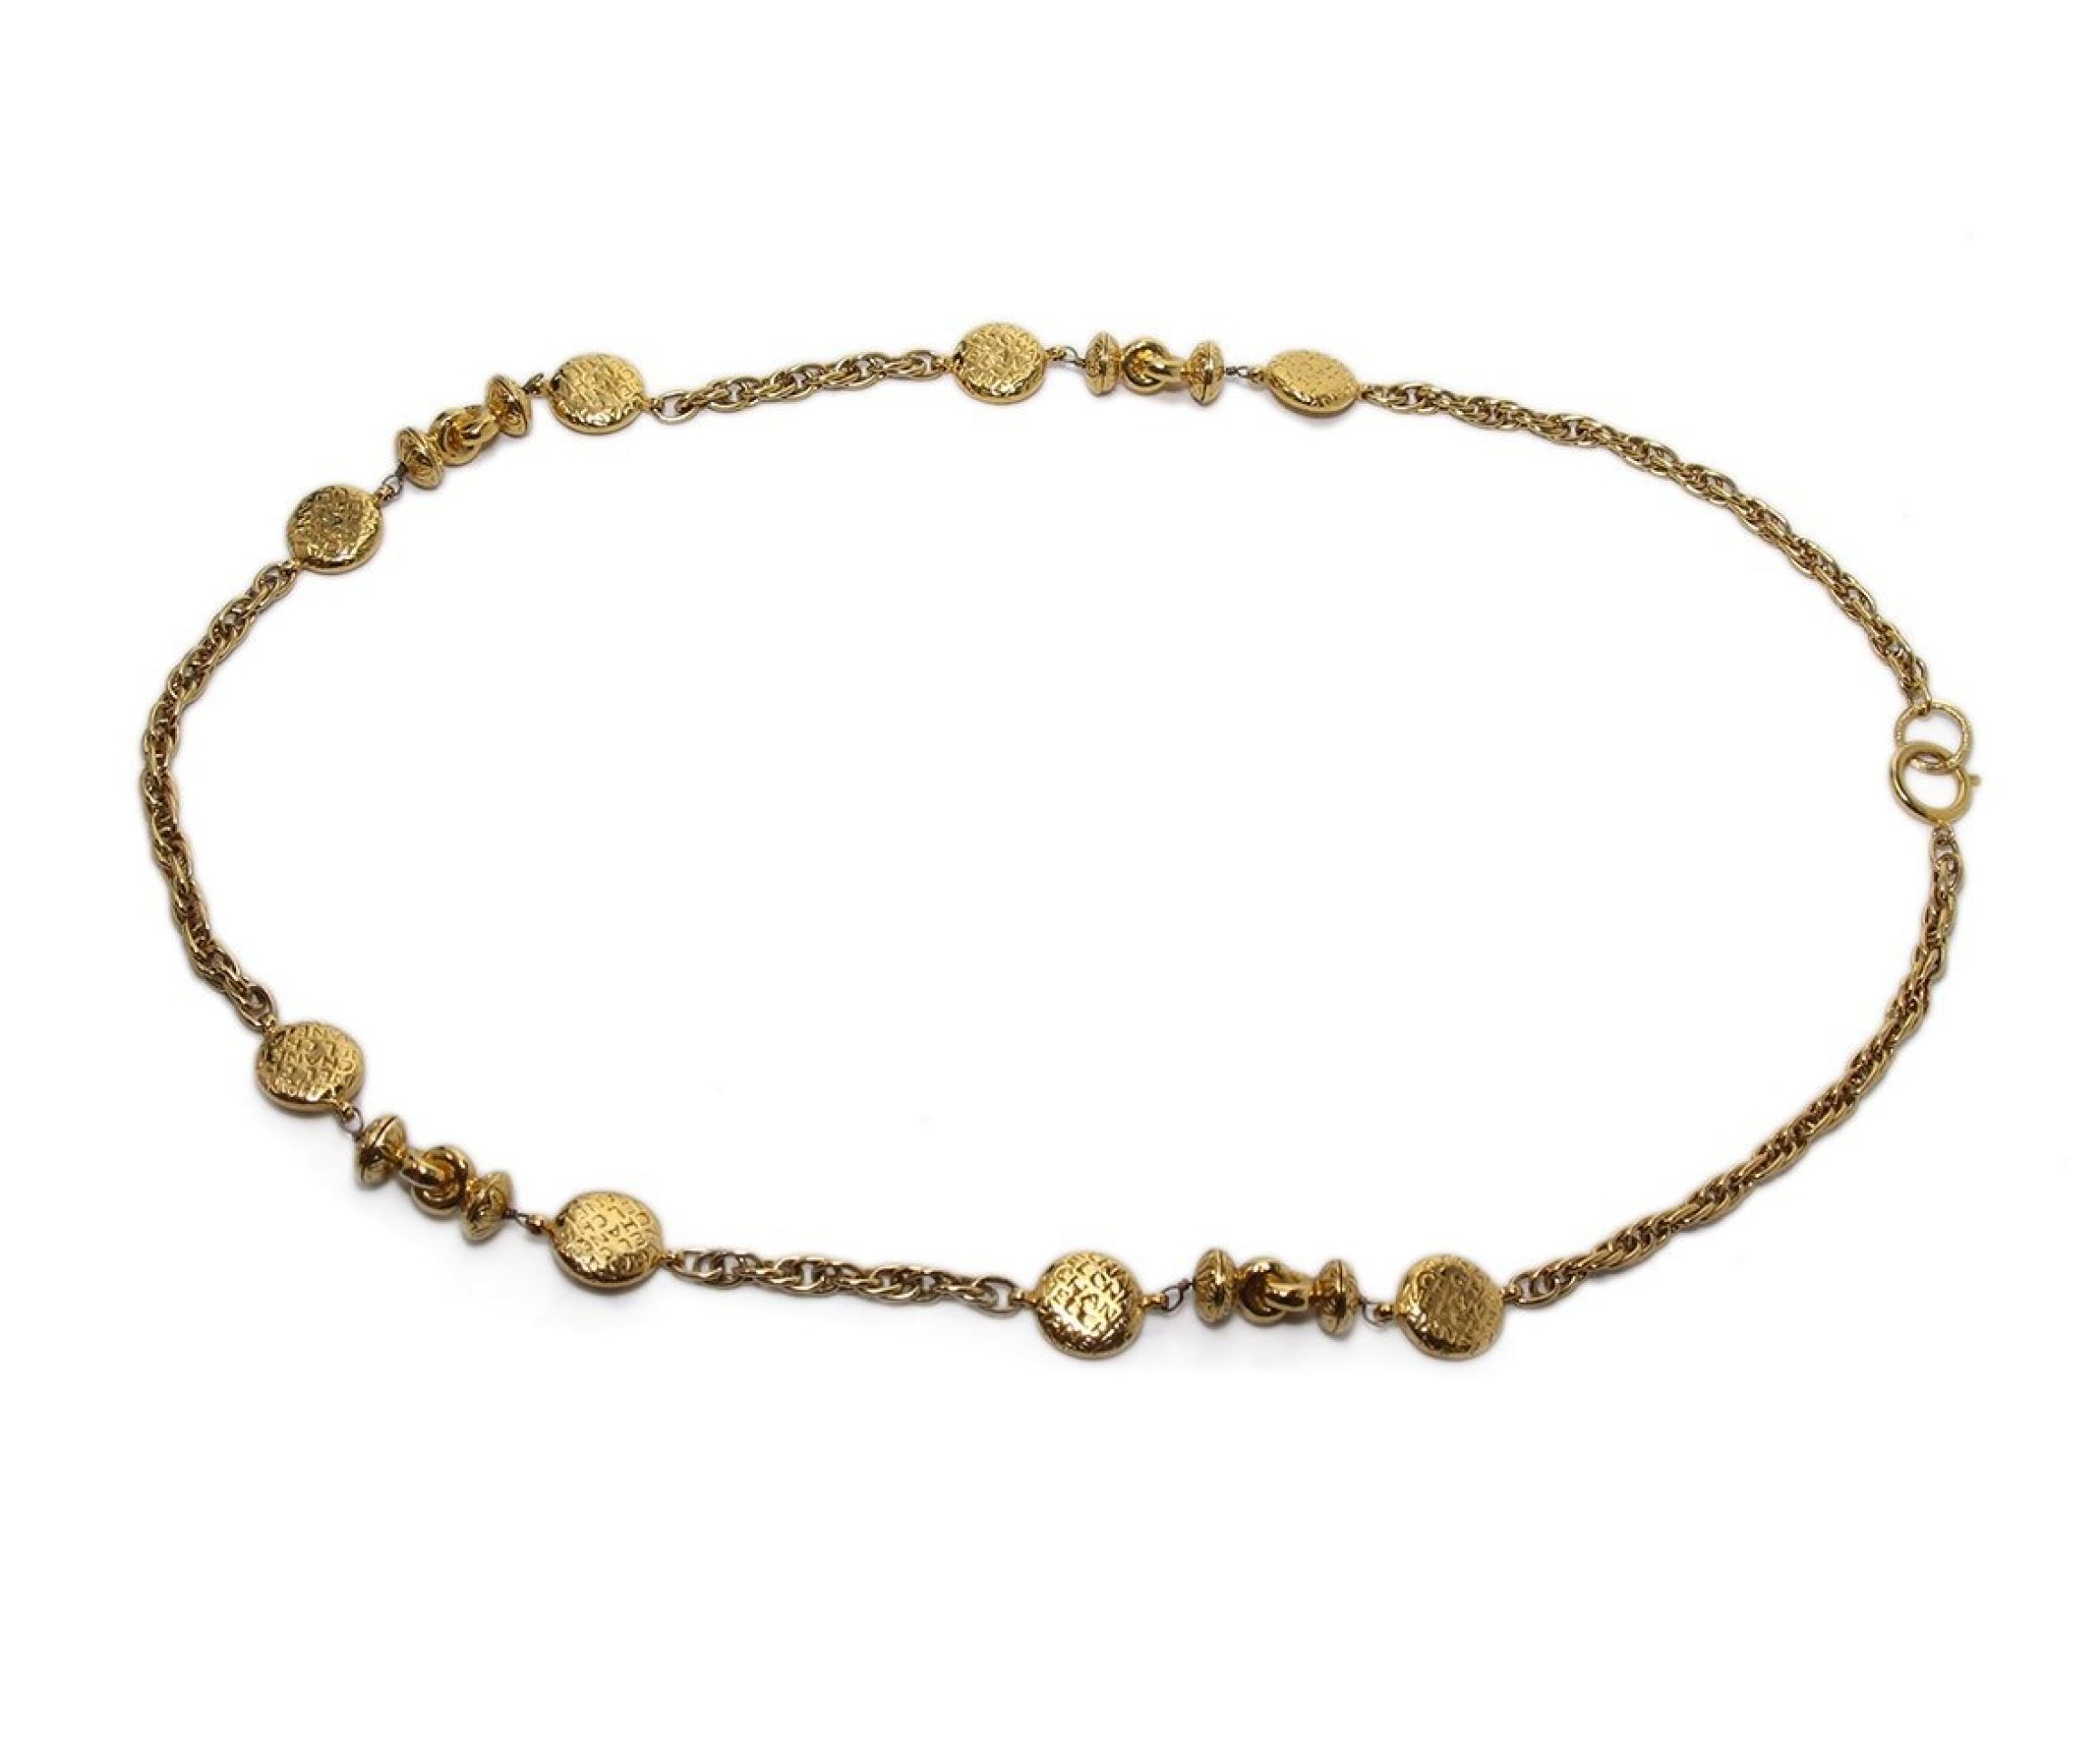 CHANEL LONG LINK METALLIC GOLD NECKLACE